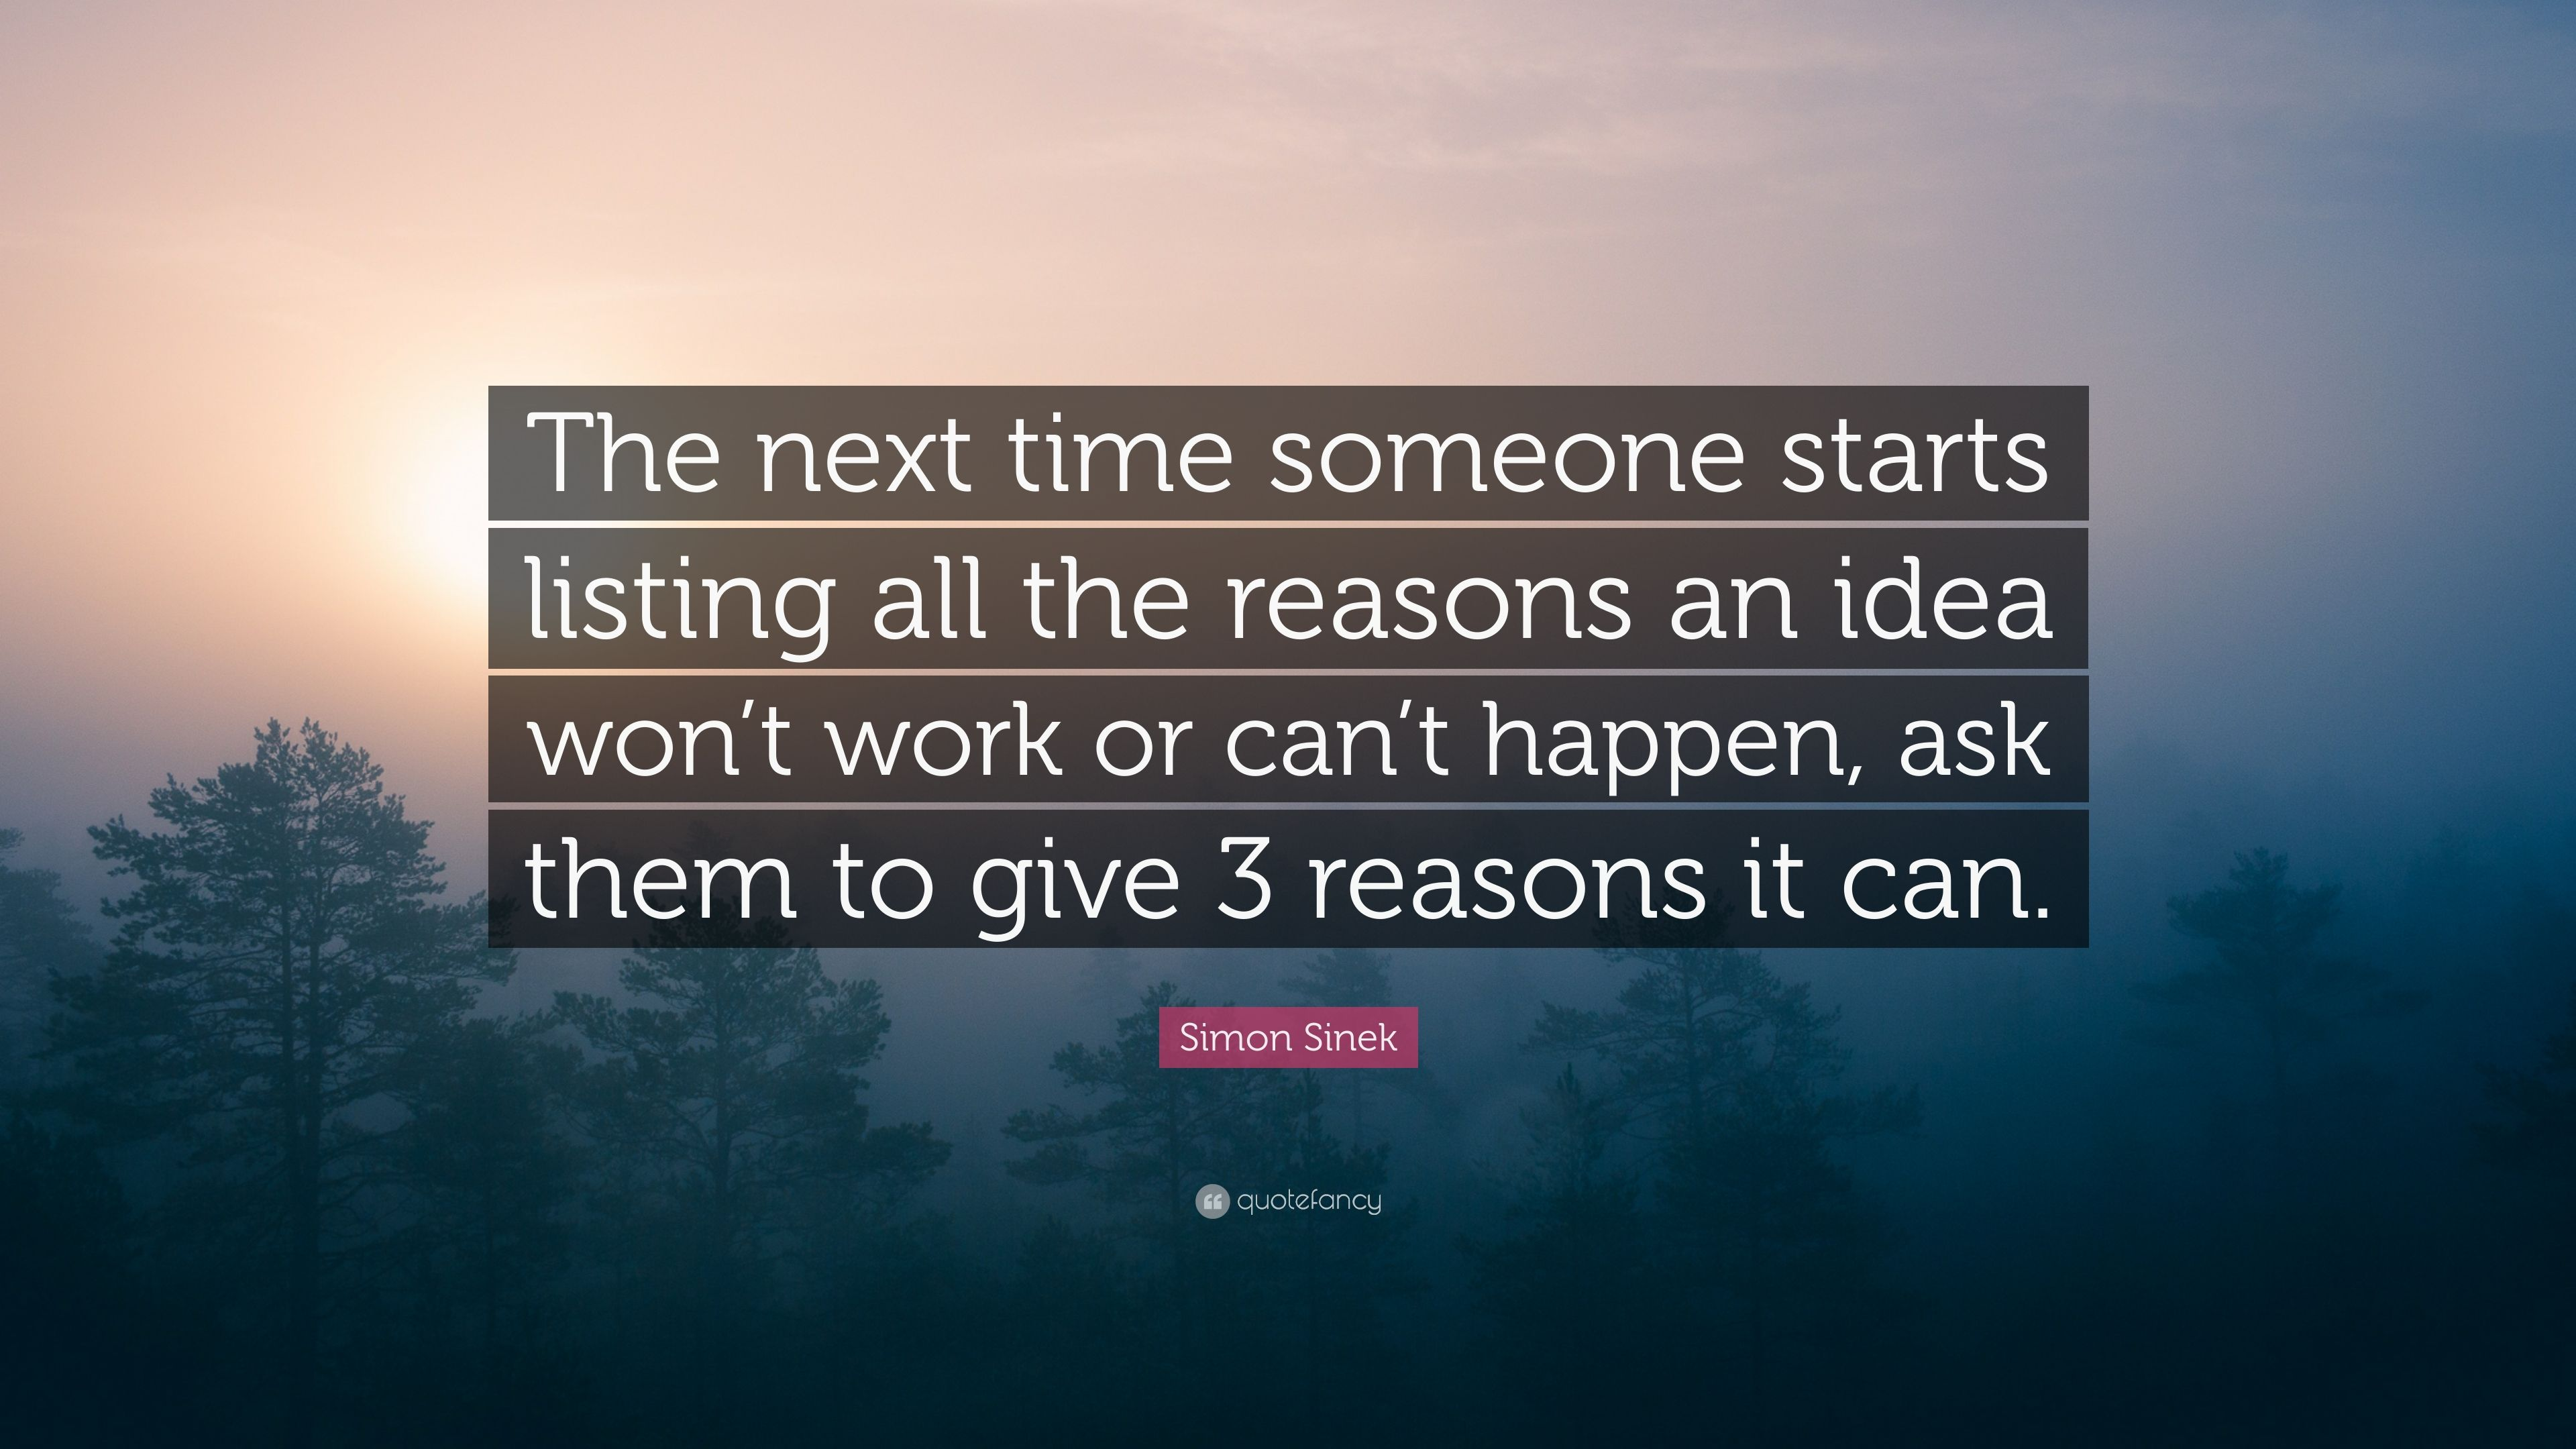 Casey Neistat Quotes Wallpaper Simon Sinek Quote The Next Time Someone Starts Listing